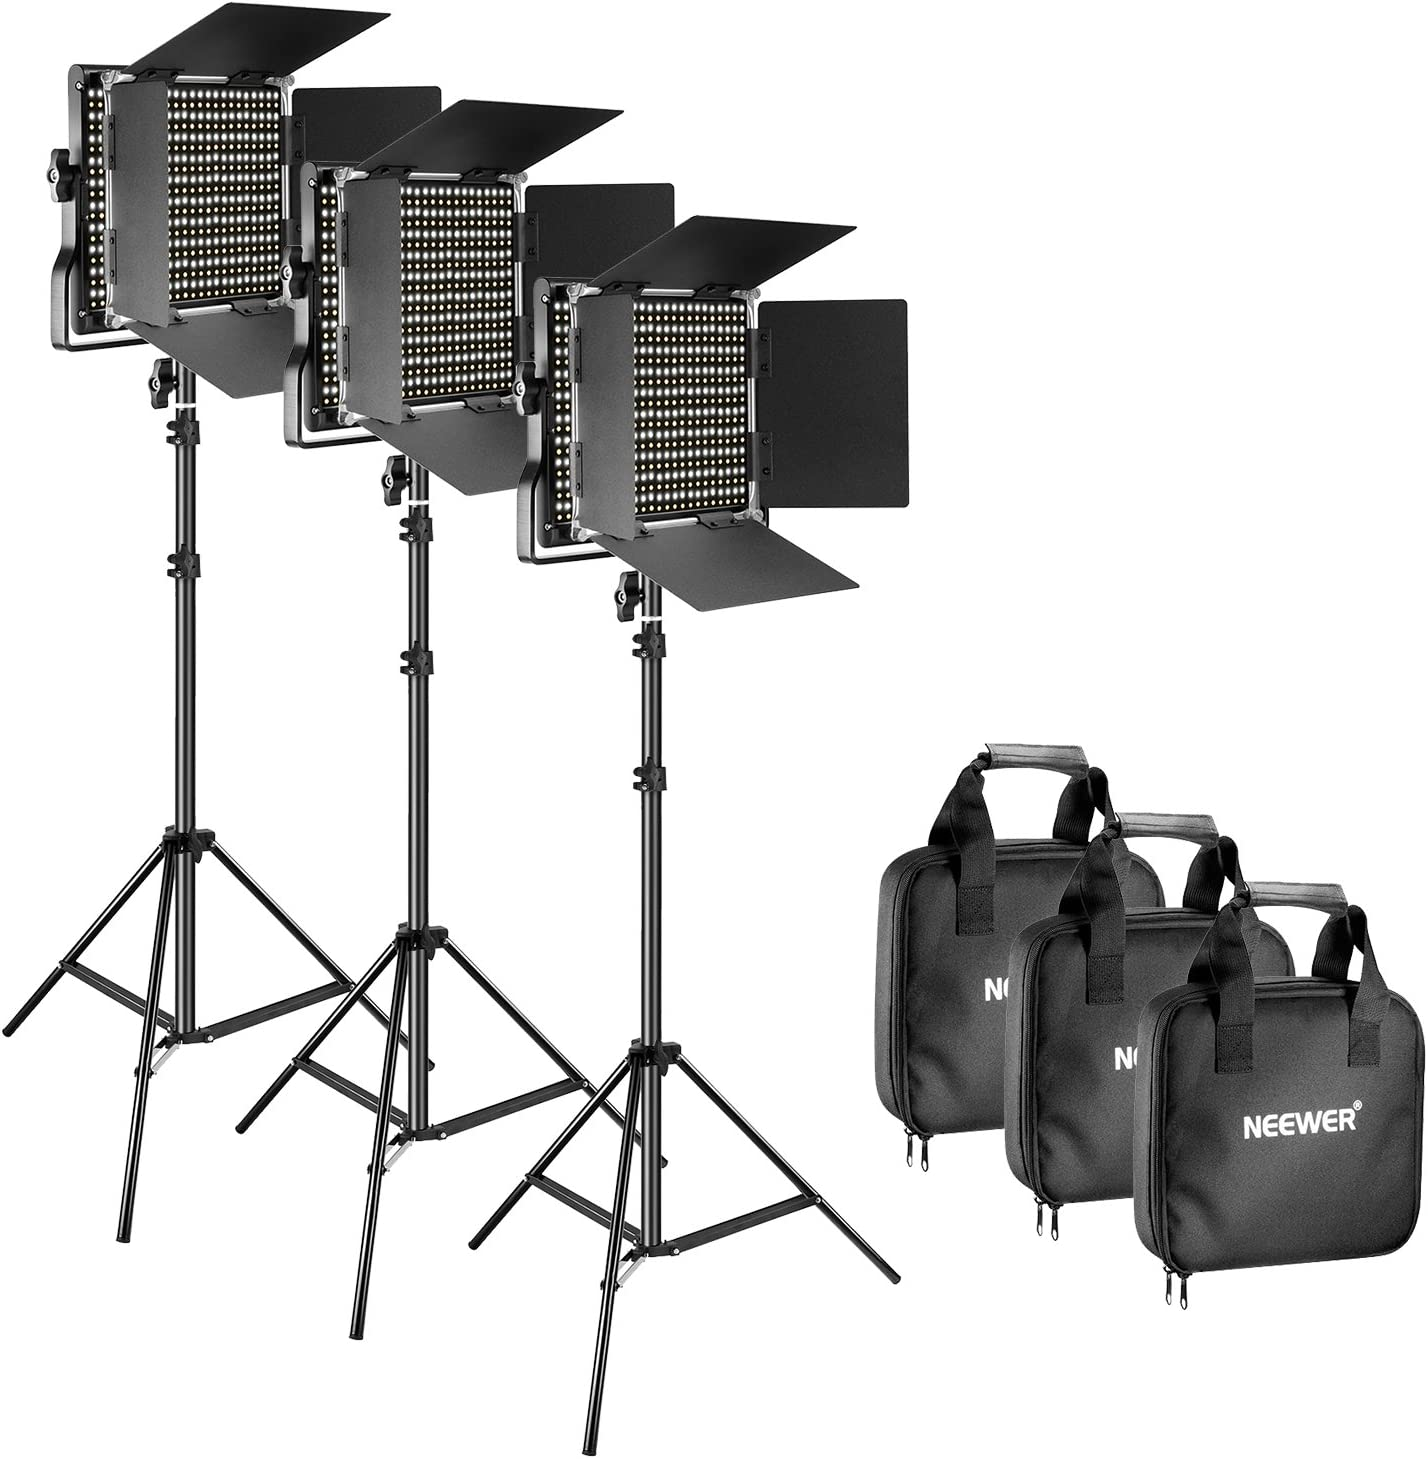 3 Neewer 3 Packs Bi-color 660 LED Video Light with Stand and Softbox Kit: 3200-5600K CRI96+ Dimmable Light with U Bracket and Barndoor 3 Softbox for Studio Photography Video Shooting 3 Light Stand